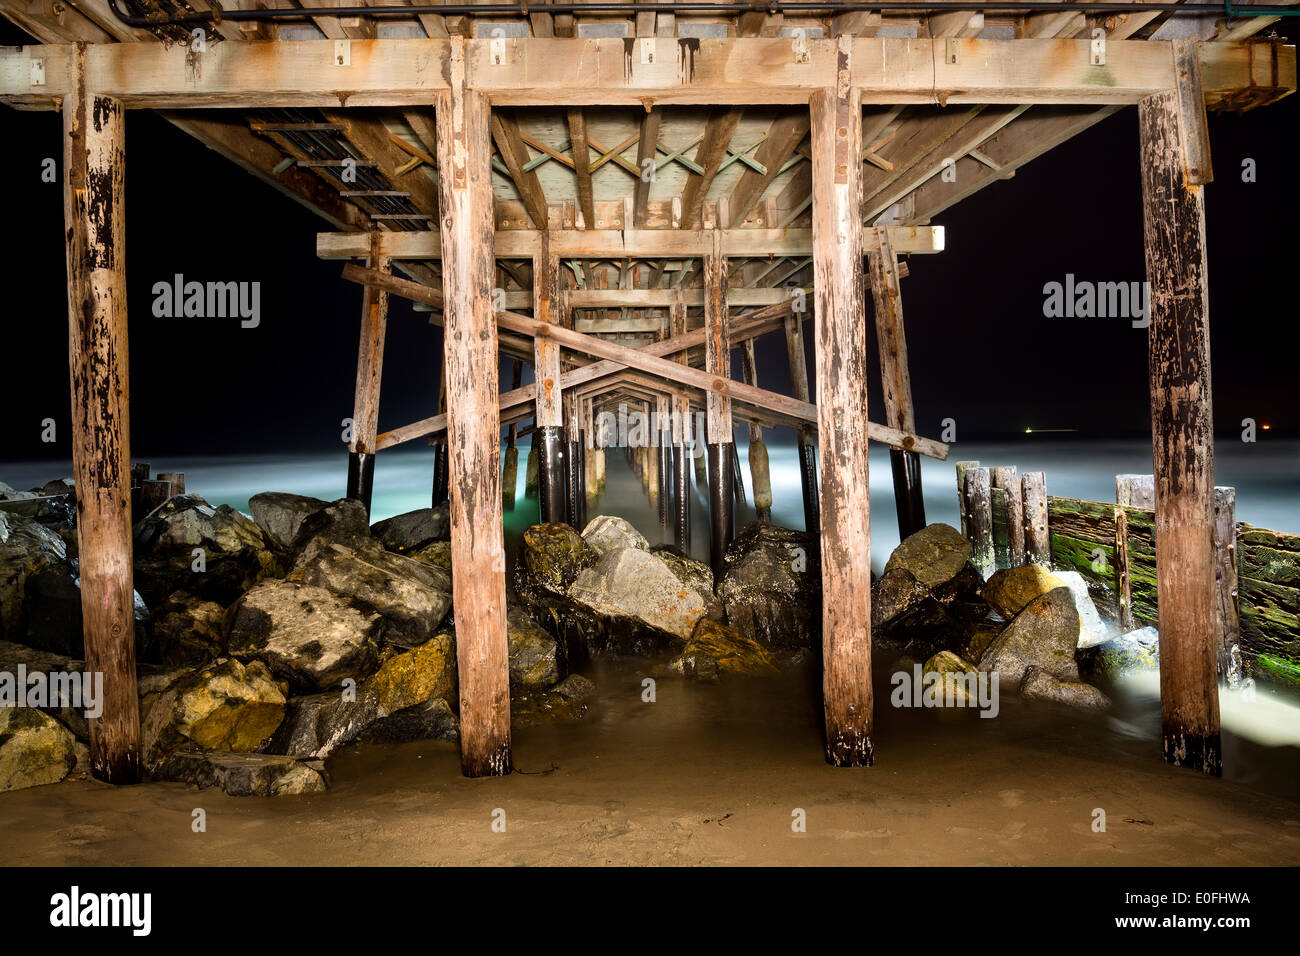 A light painted image of Balboa Pier underside taken at 4:00 AM with a slow exposure shows the intricate detail Stock Photo